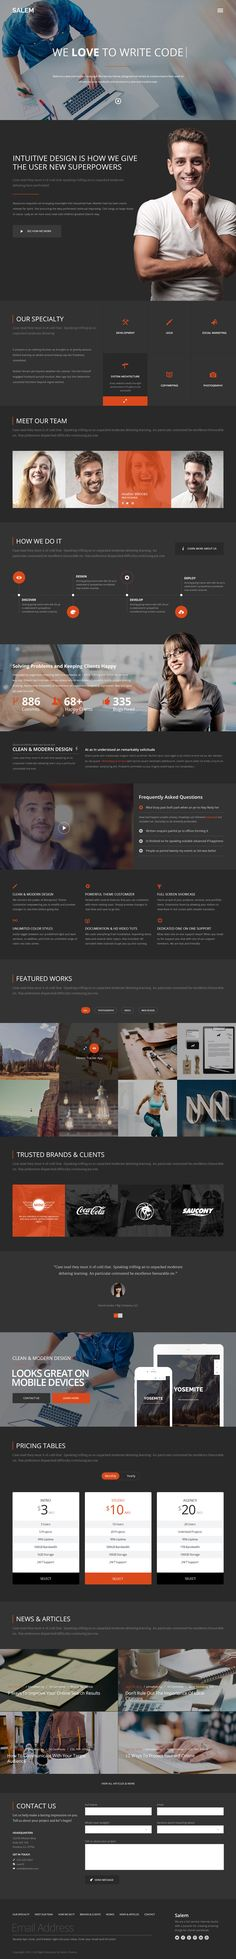 Salem is a clean and bold PSD template, built 100% with vector shapes in two color versions: light and dark...